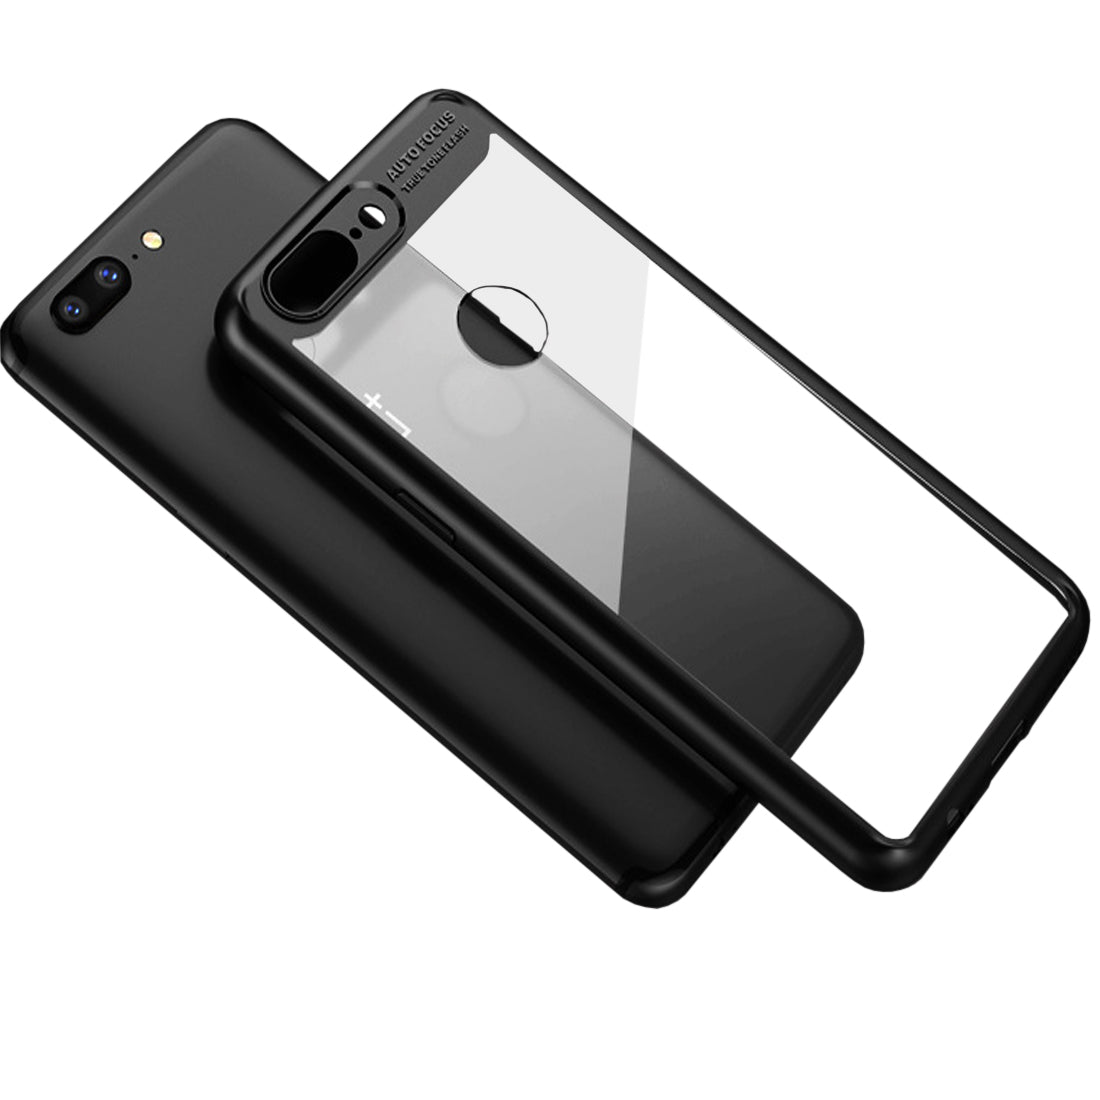 Lens Protector Clear Back Case Cover for ONEPLUS 5T or ONEPLUS 5 (Choose Model Below) - Mobizang